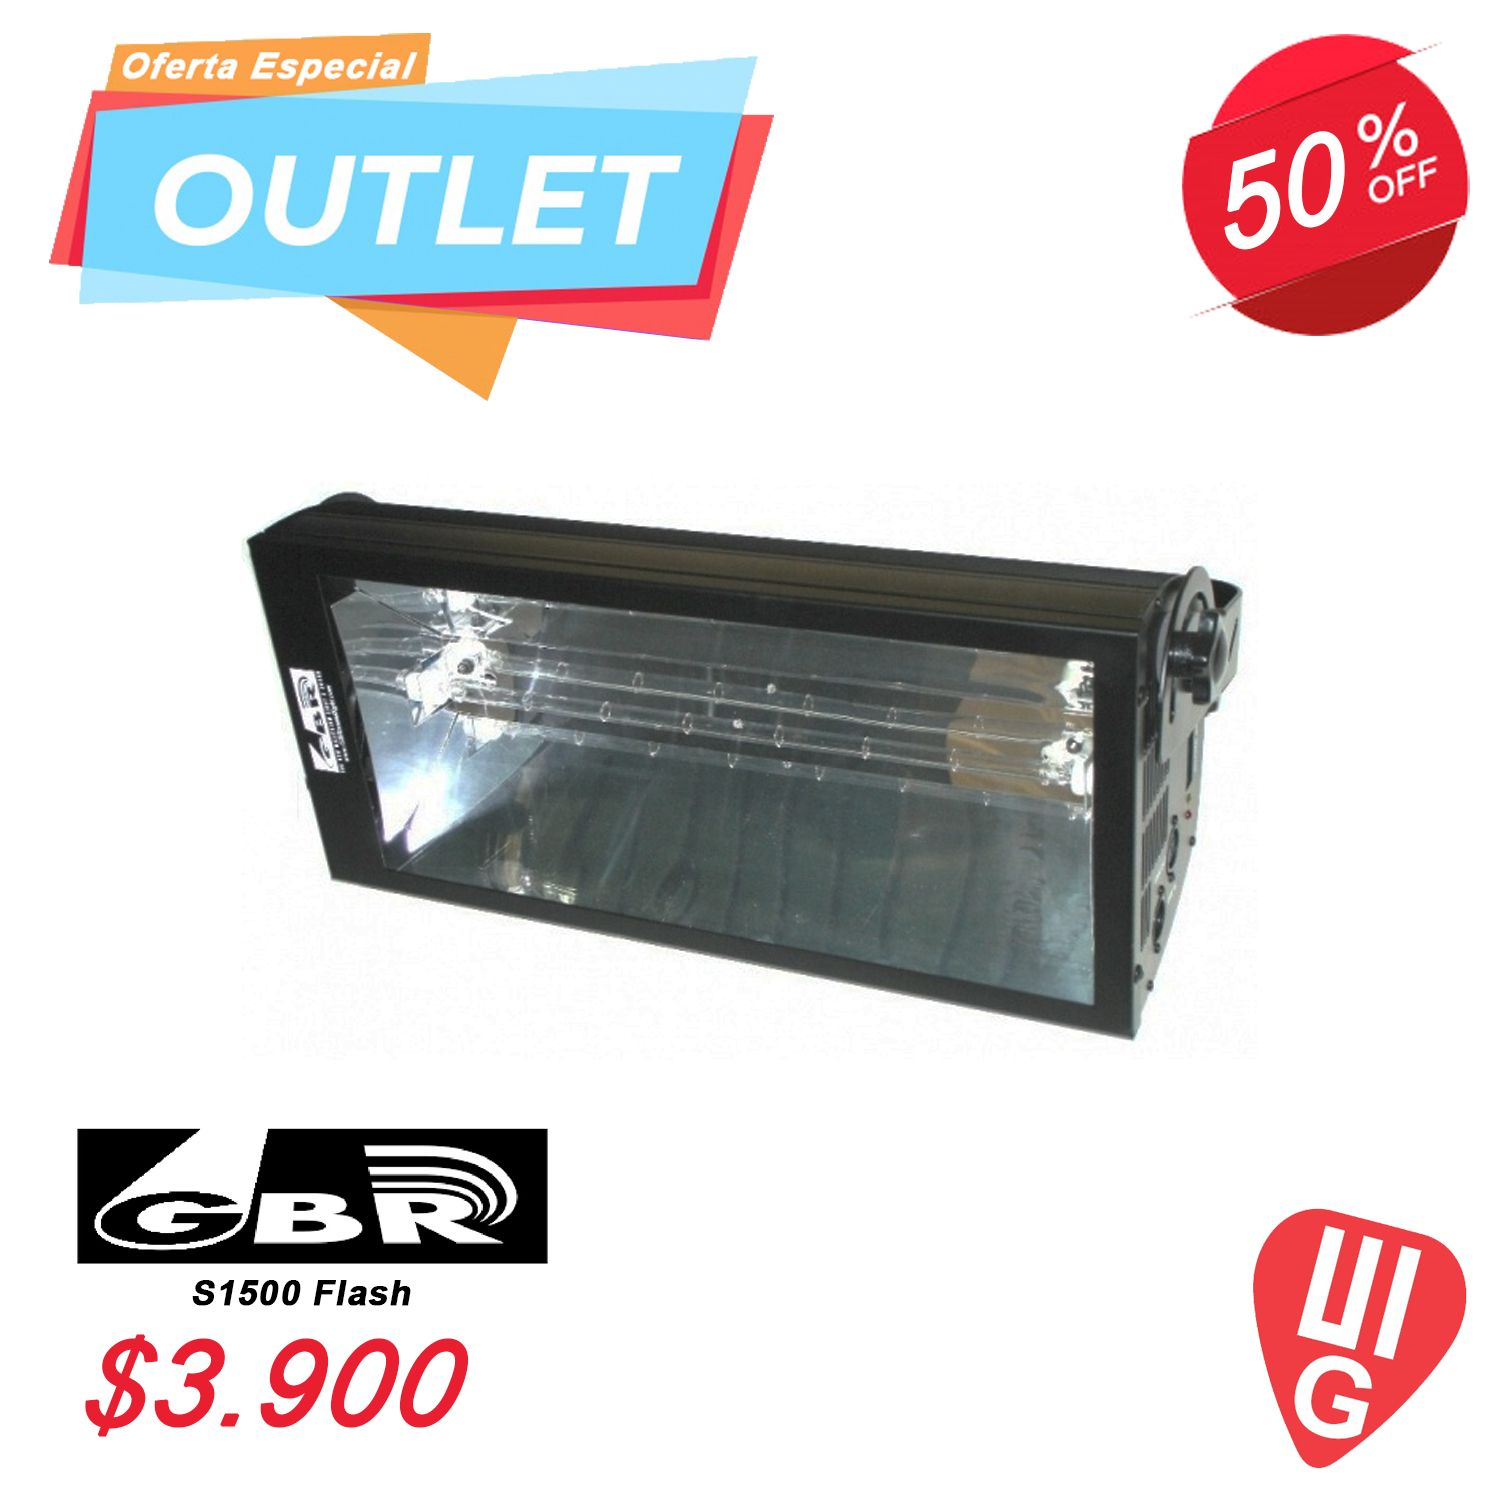 OUTLET S1500